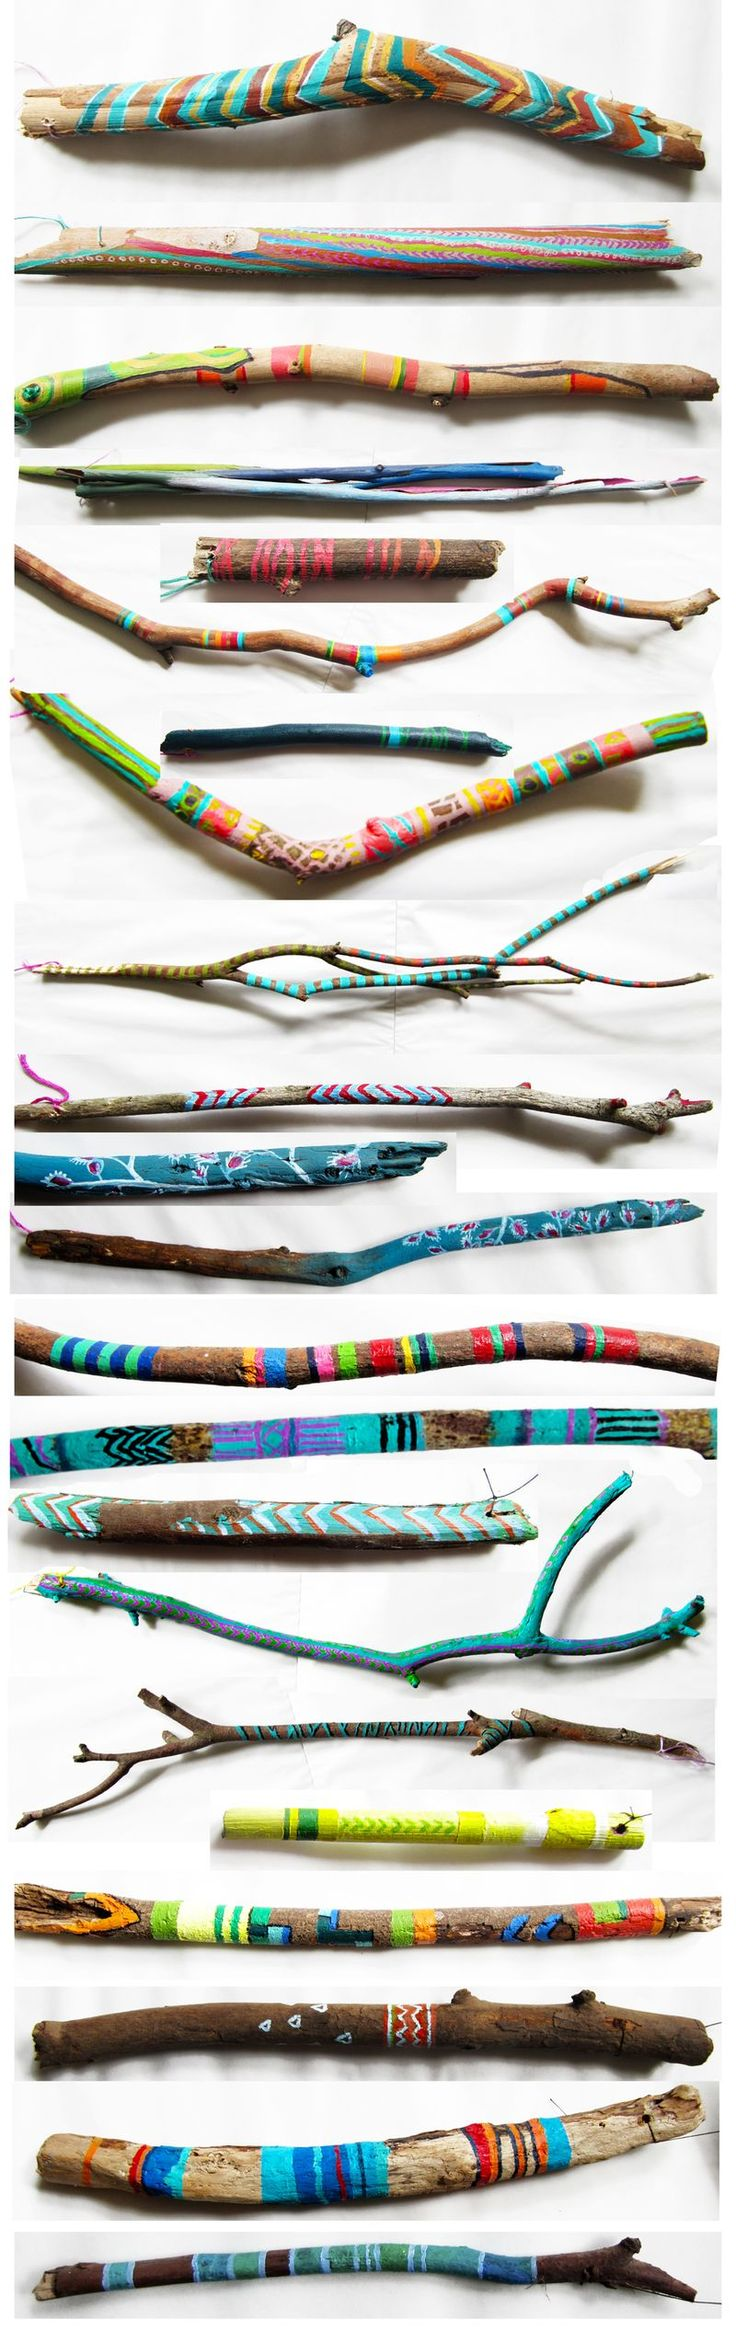 Painted sticks.  molly goldberg: Idea, Painted Branch, Diy, Painted Sticks, Spirit Stick